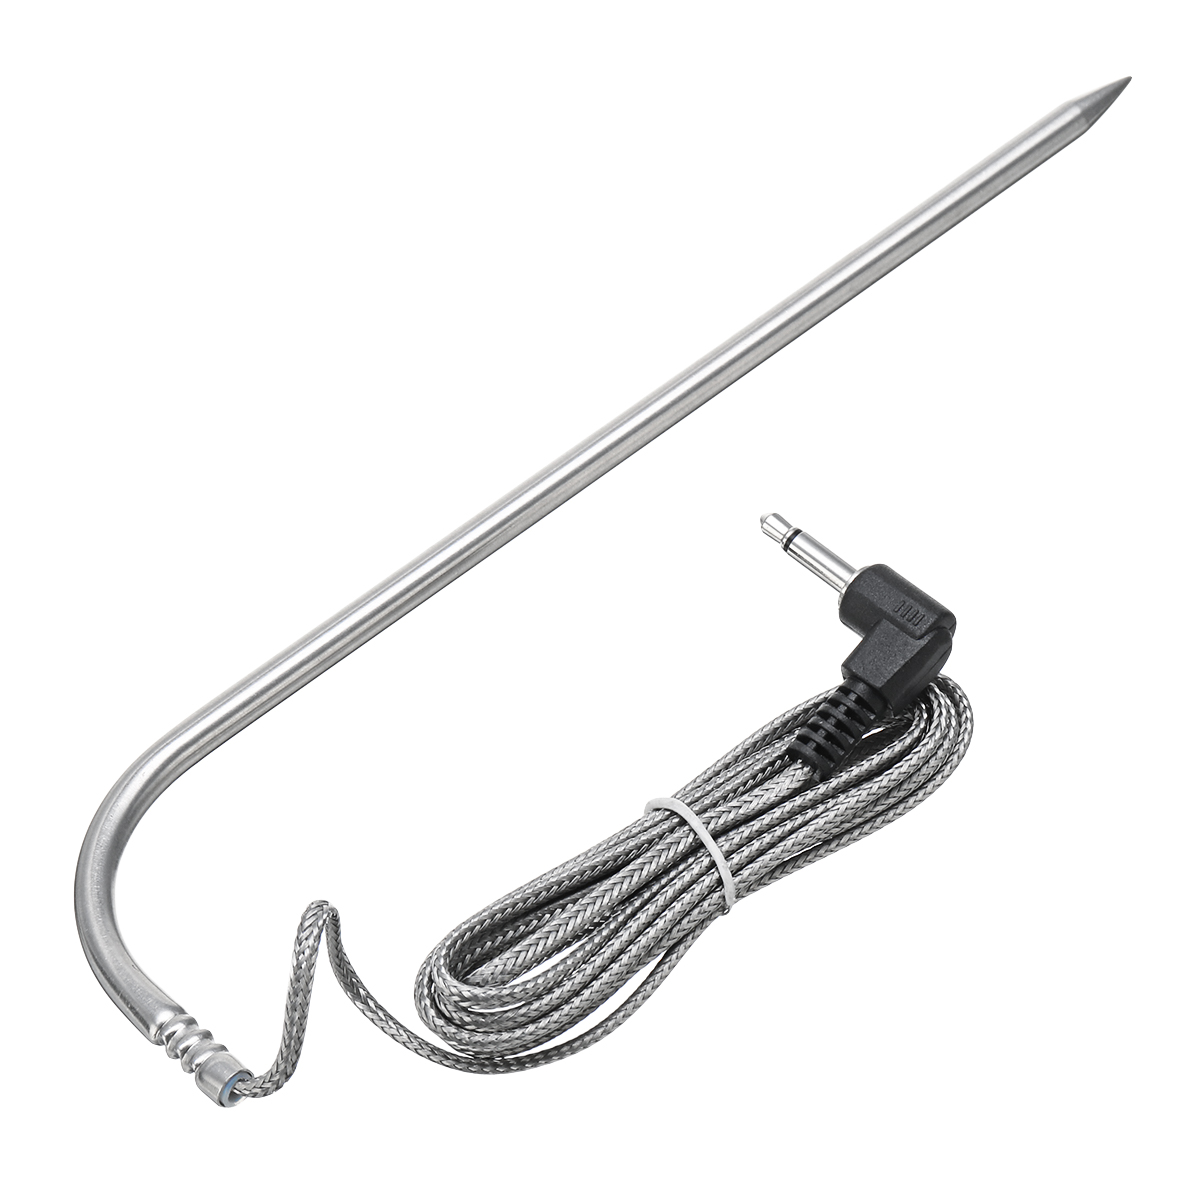 New Replacement Meat Temperature Probe Kit For Traeger Pit